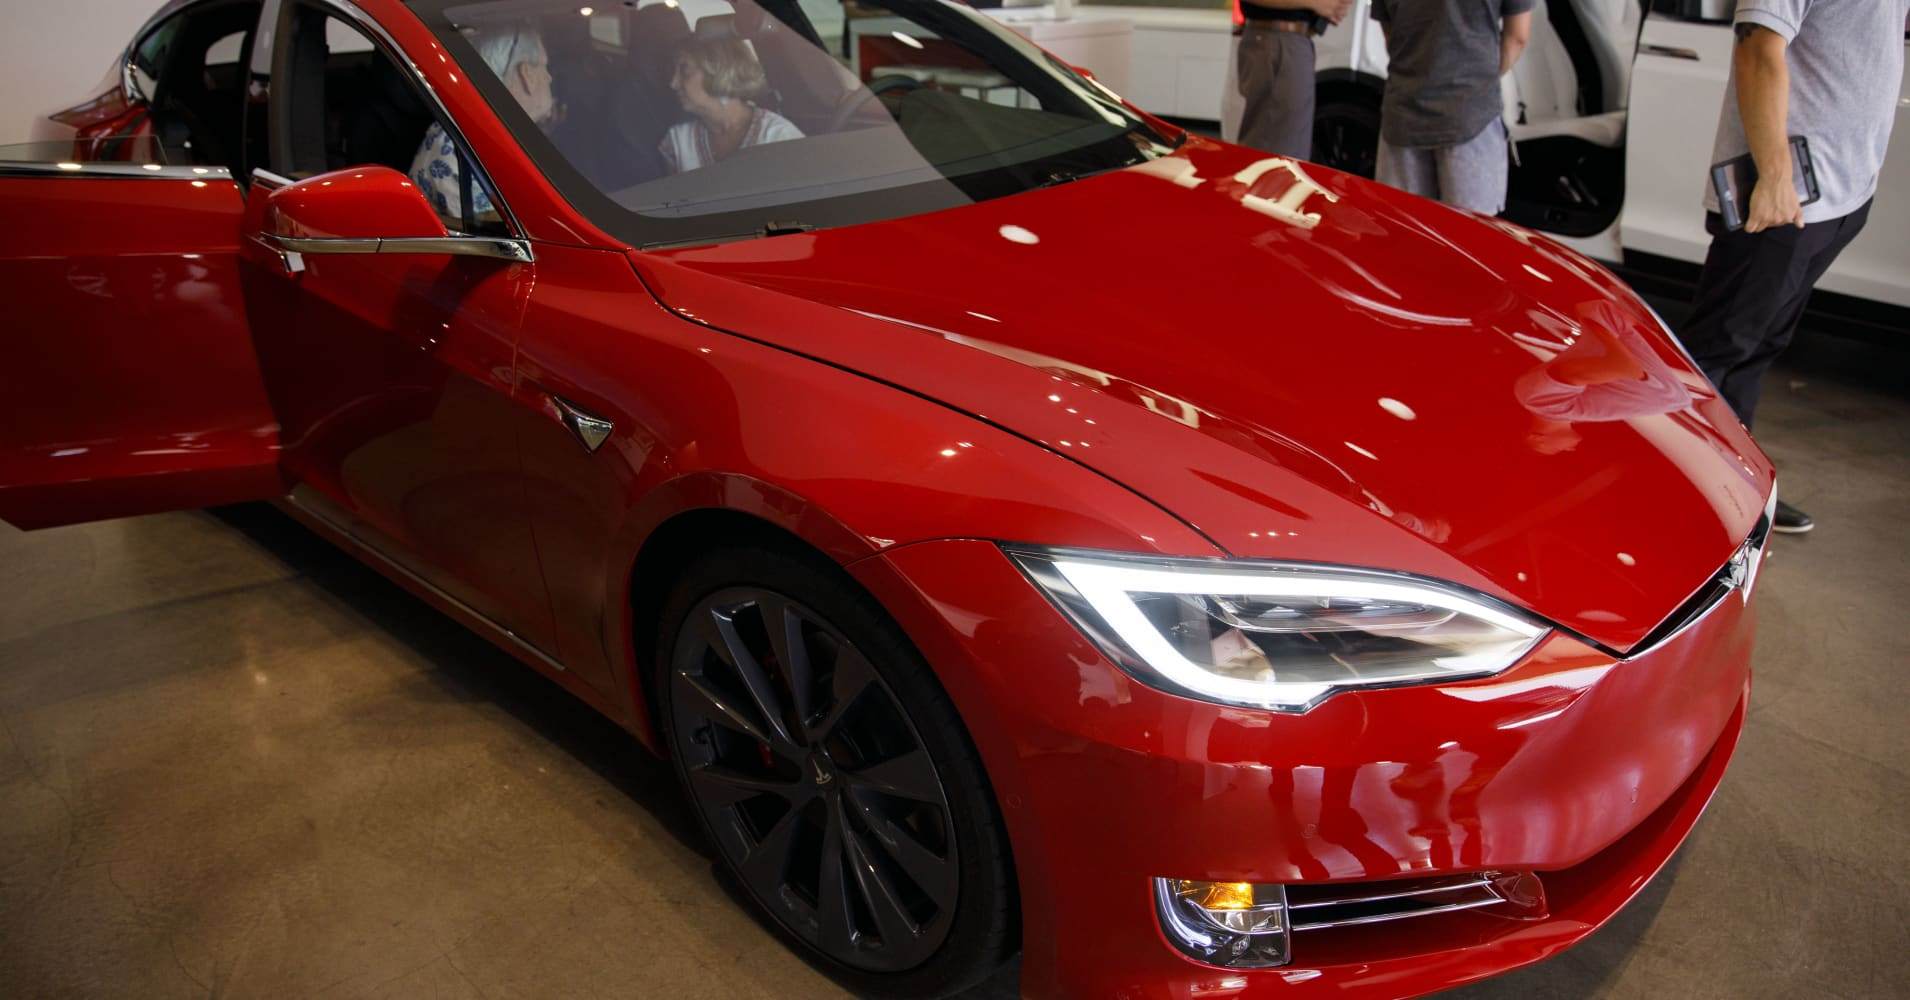 Tesla Model S Catches Fire in California Town: Fire Department